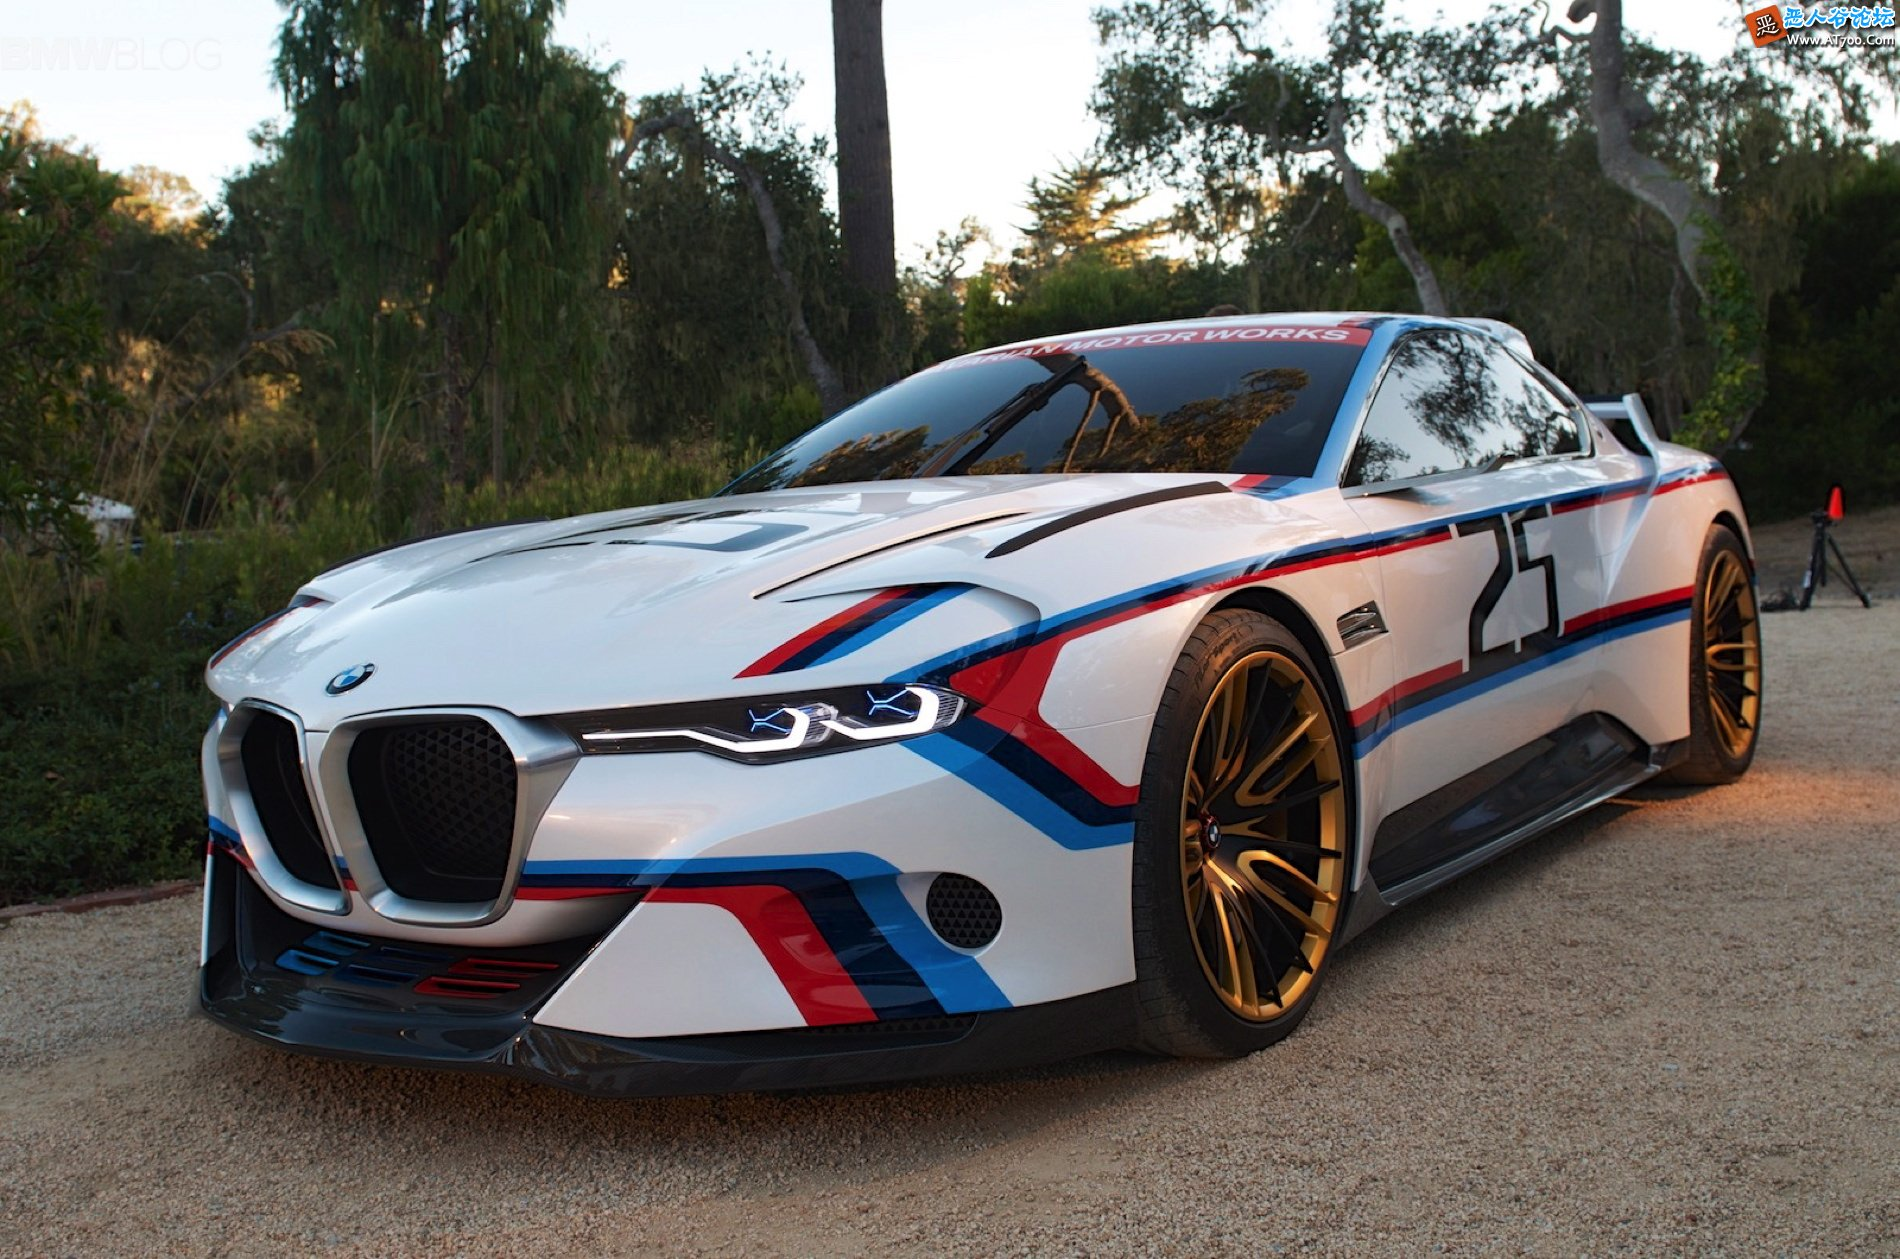 BMW-30-CSL-Hommage-Racing-images-53.jpg